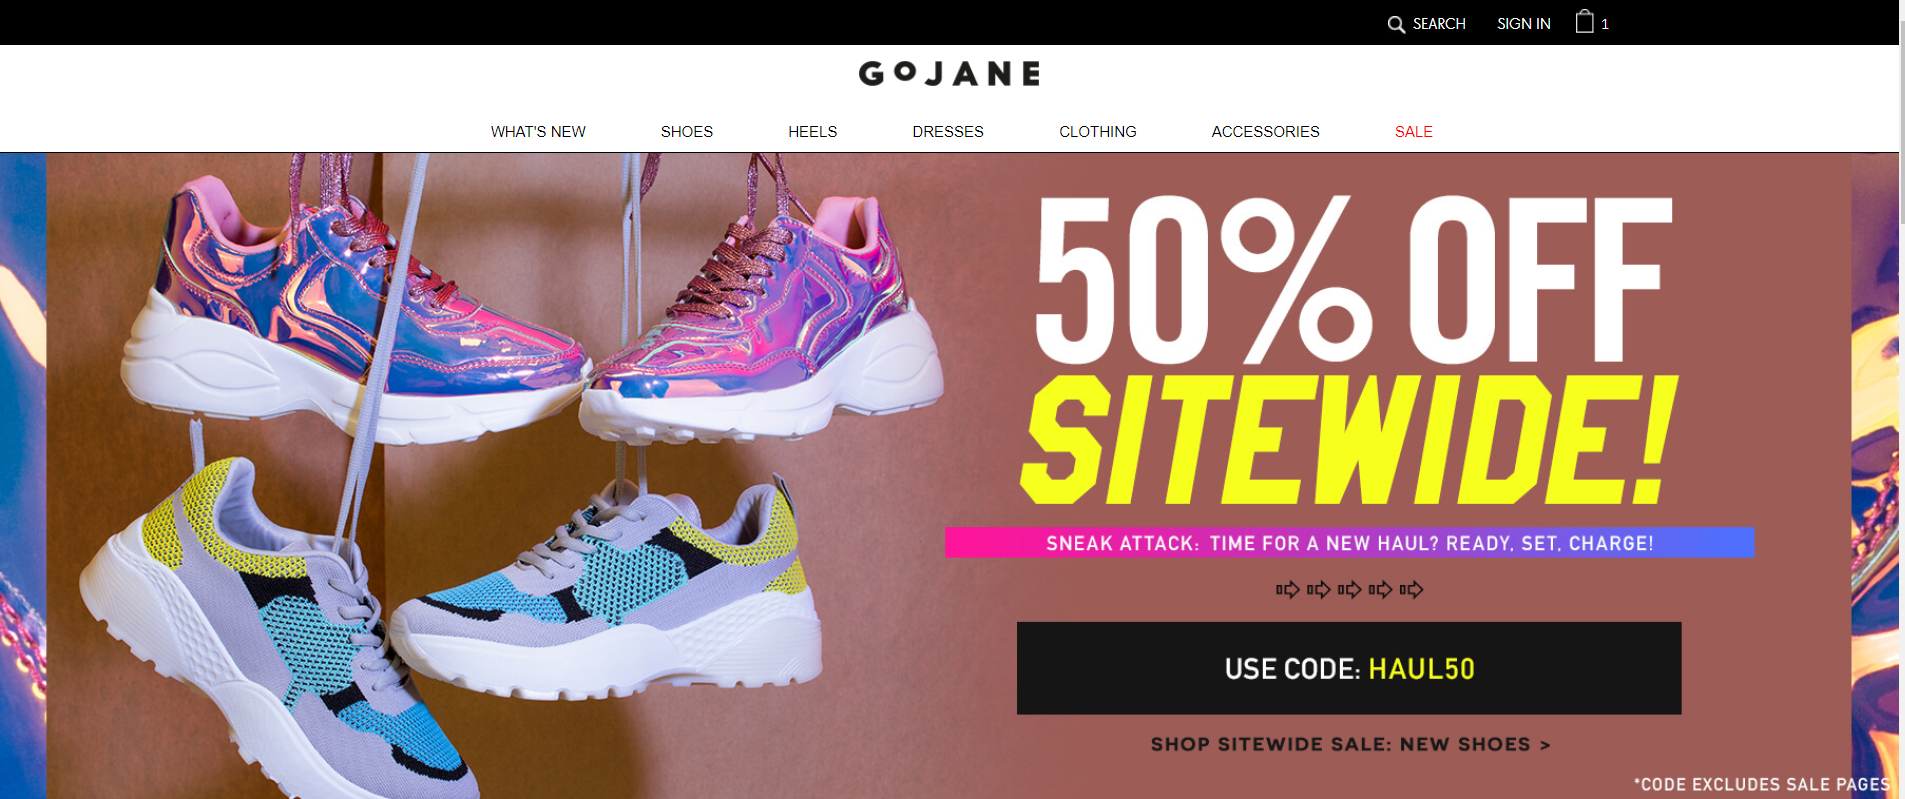 Gojane Coupons 02